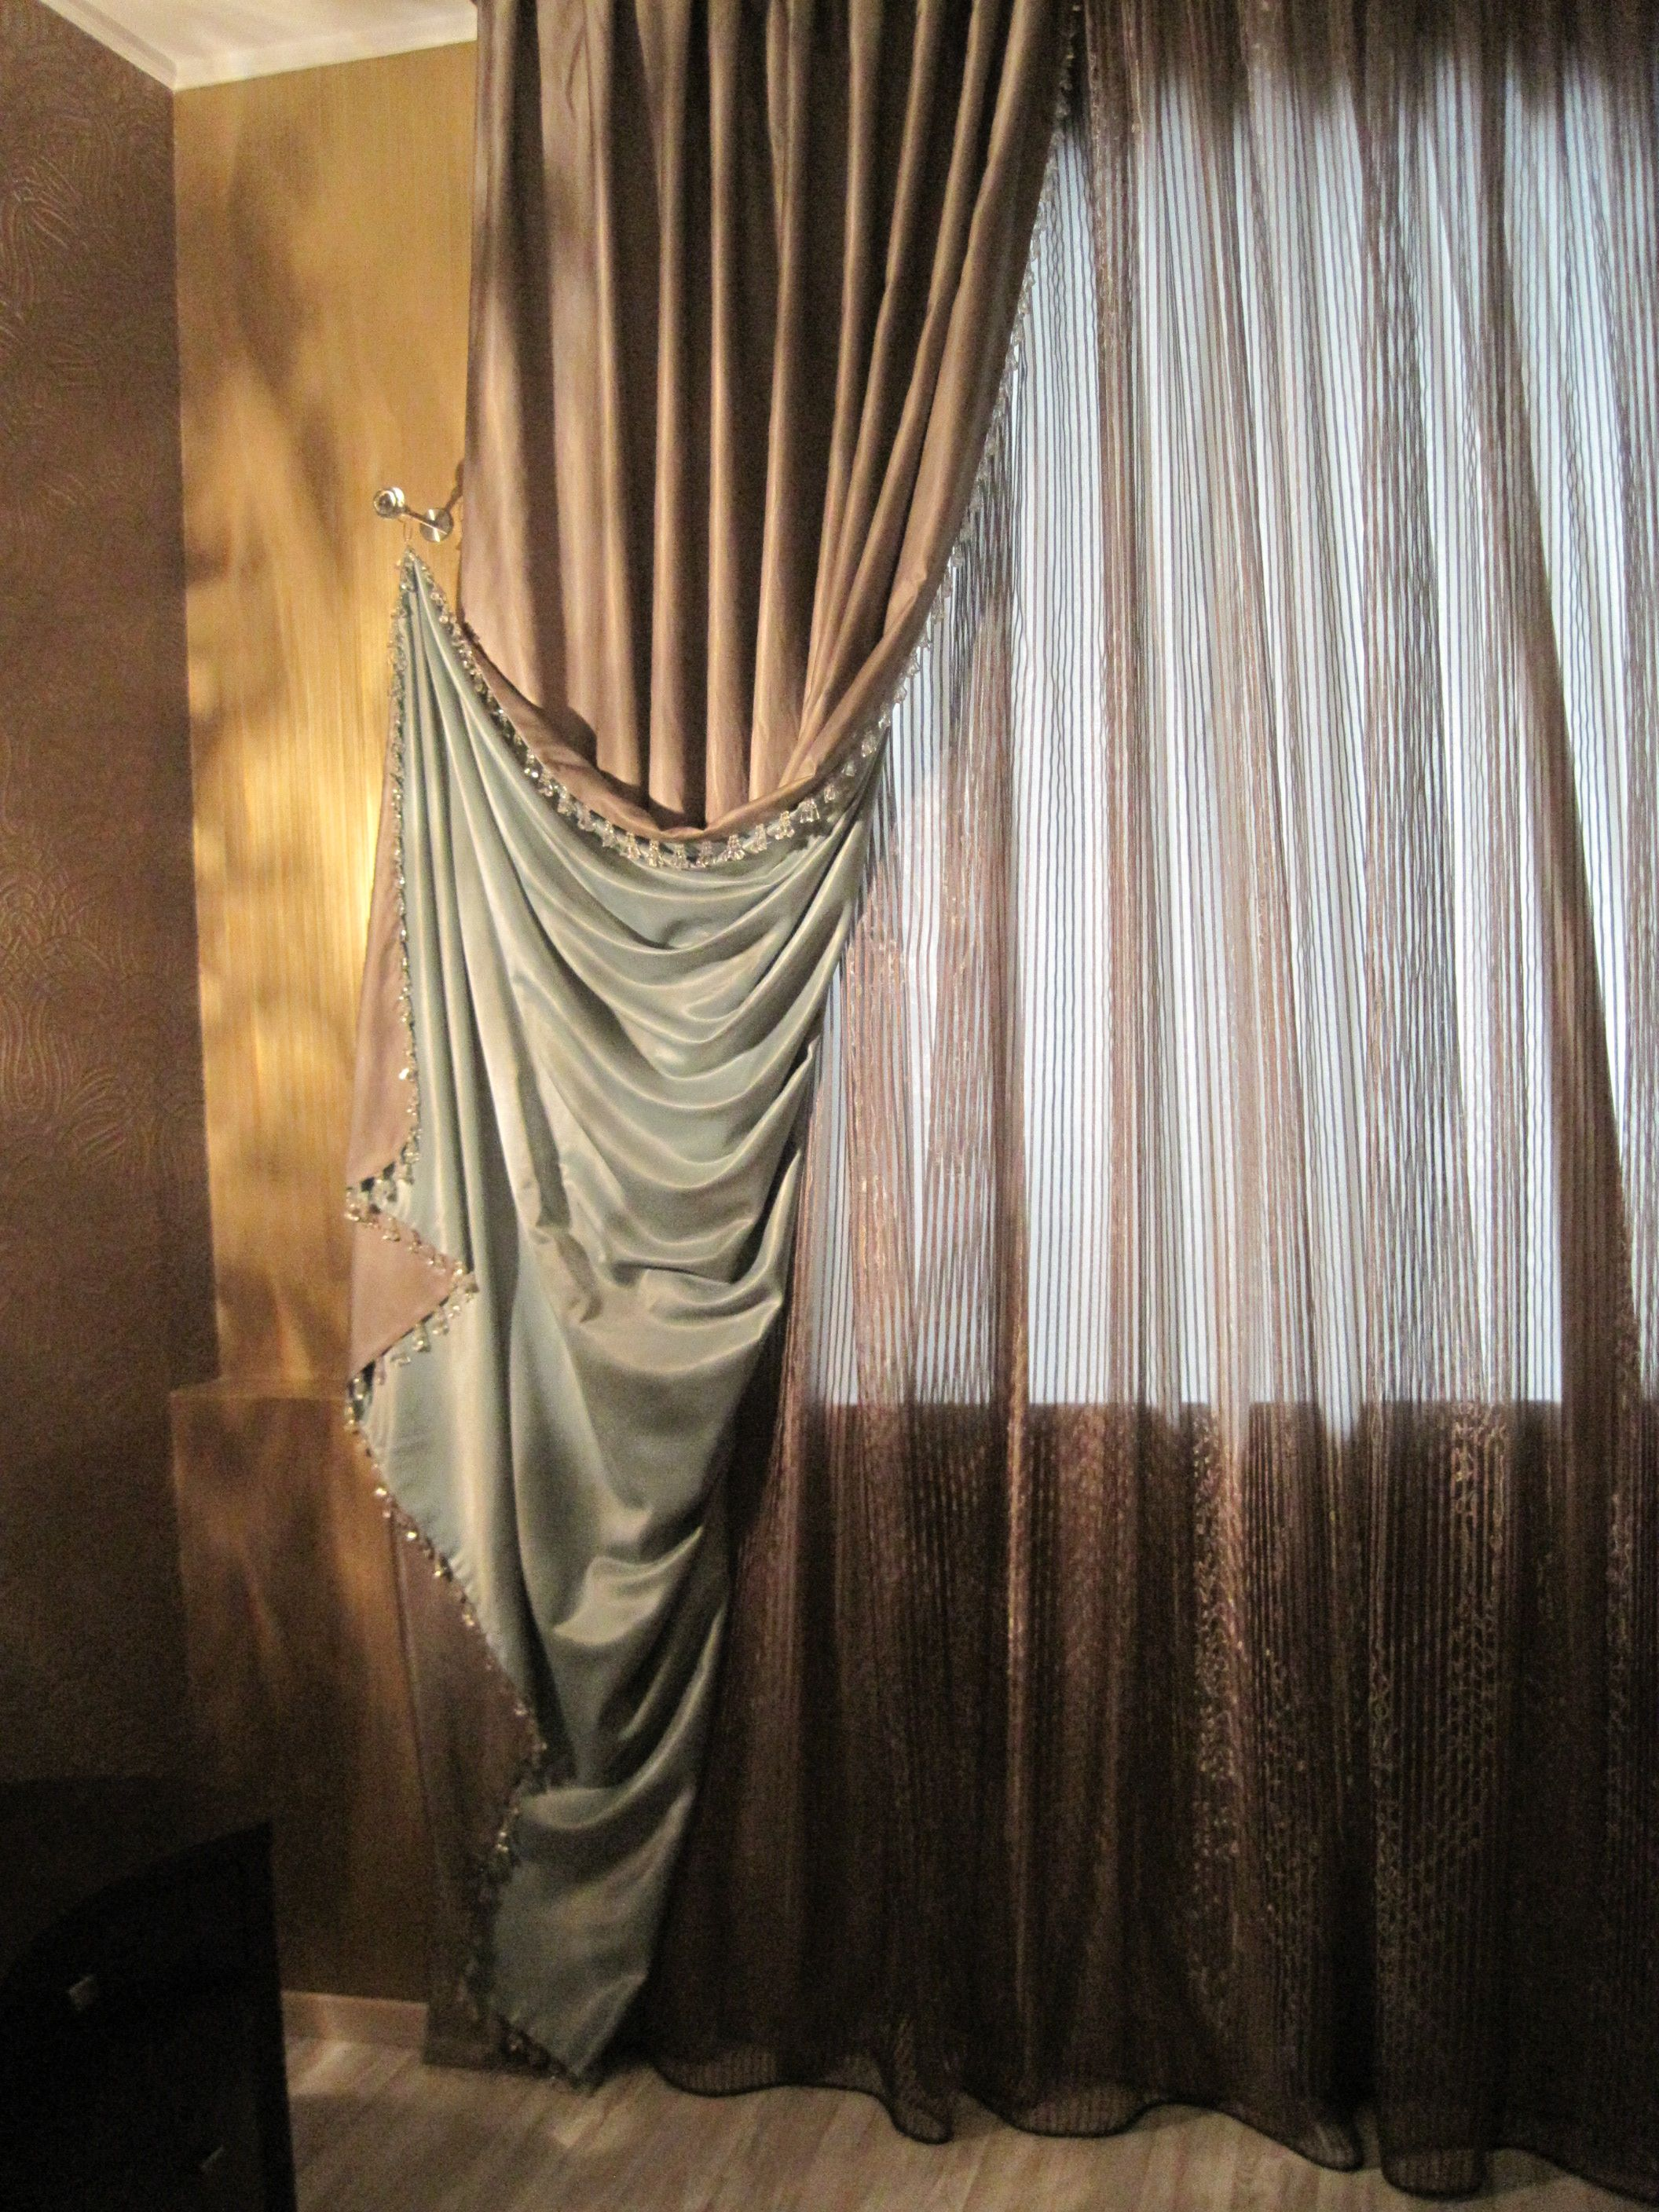 A dramatic pulled back drape contrast lined and complimented with a copper sheer delightful